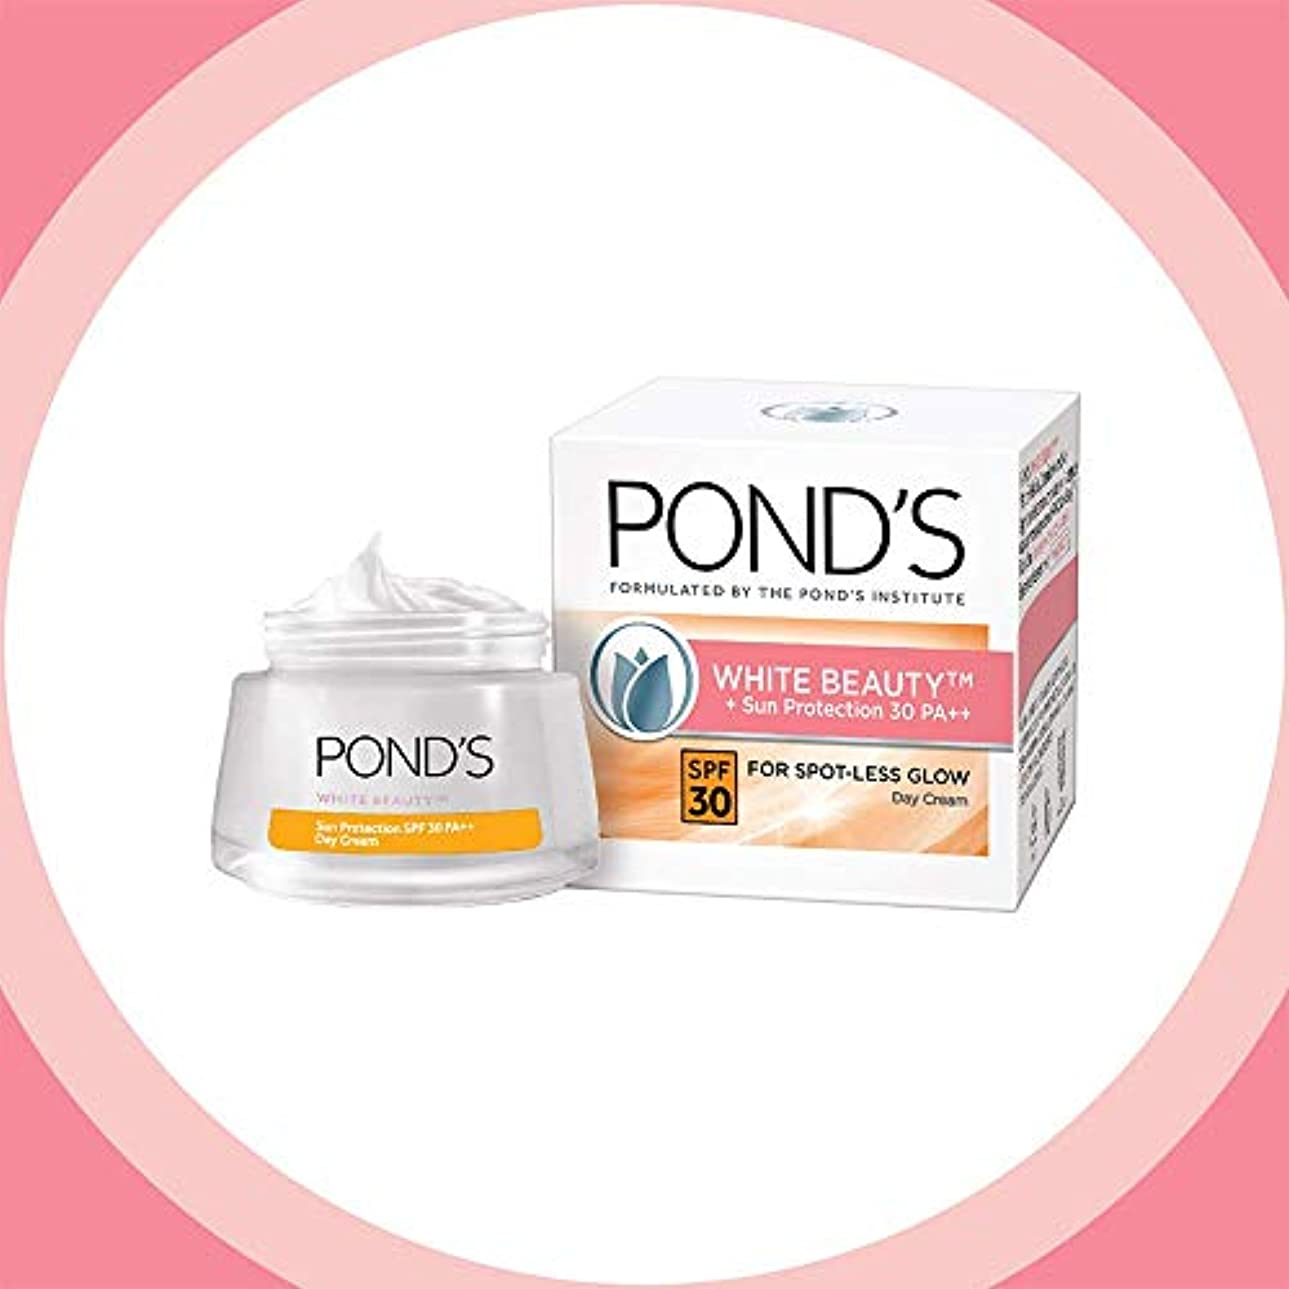 セッション洗練宿泊POND'S White Beauty Sun Protection SPF 30 Day Cream, 35 gms (並行インポート) India